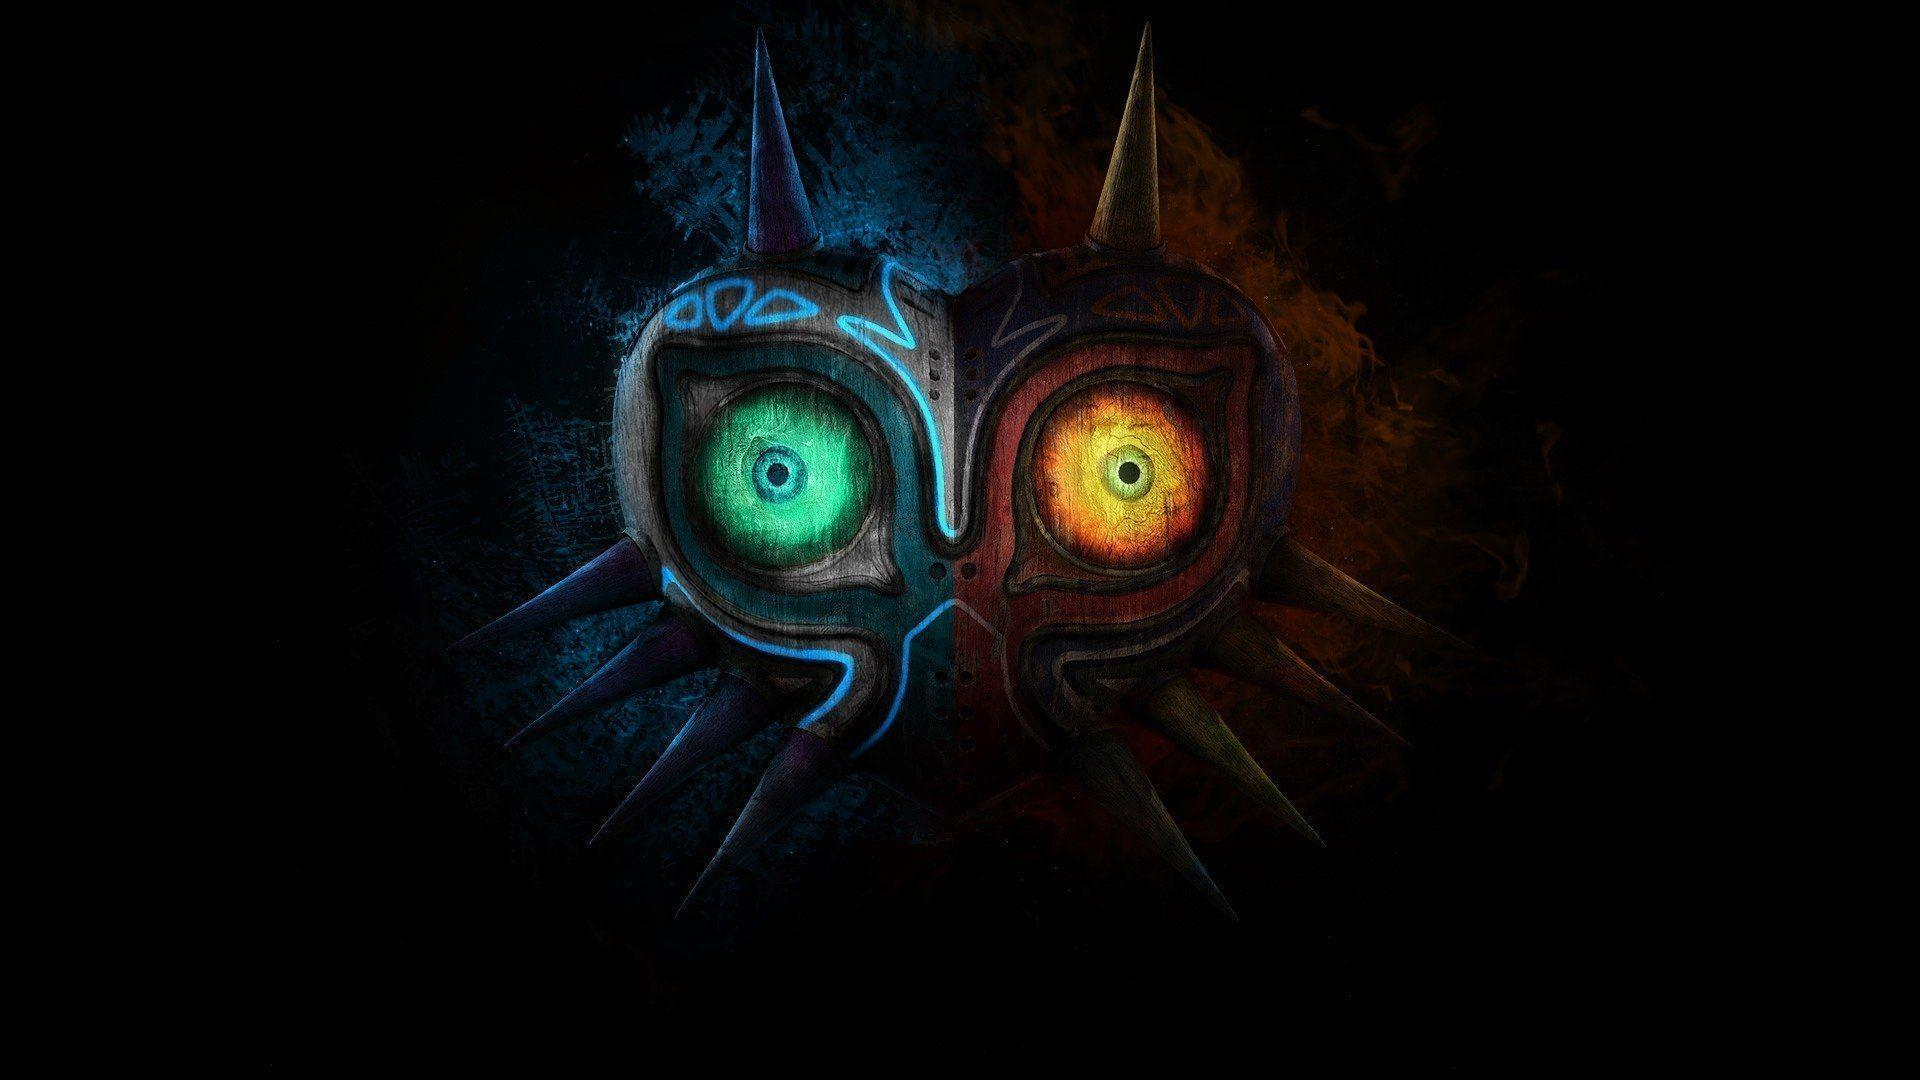 80 The Legend Of Zelda: Majora's Mask HD Wallpapers